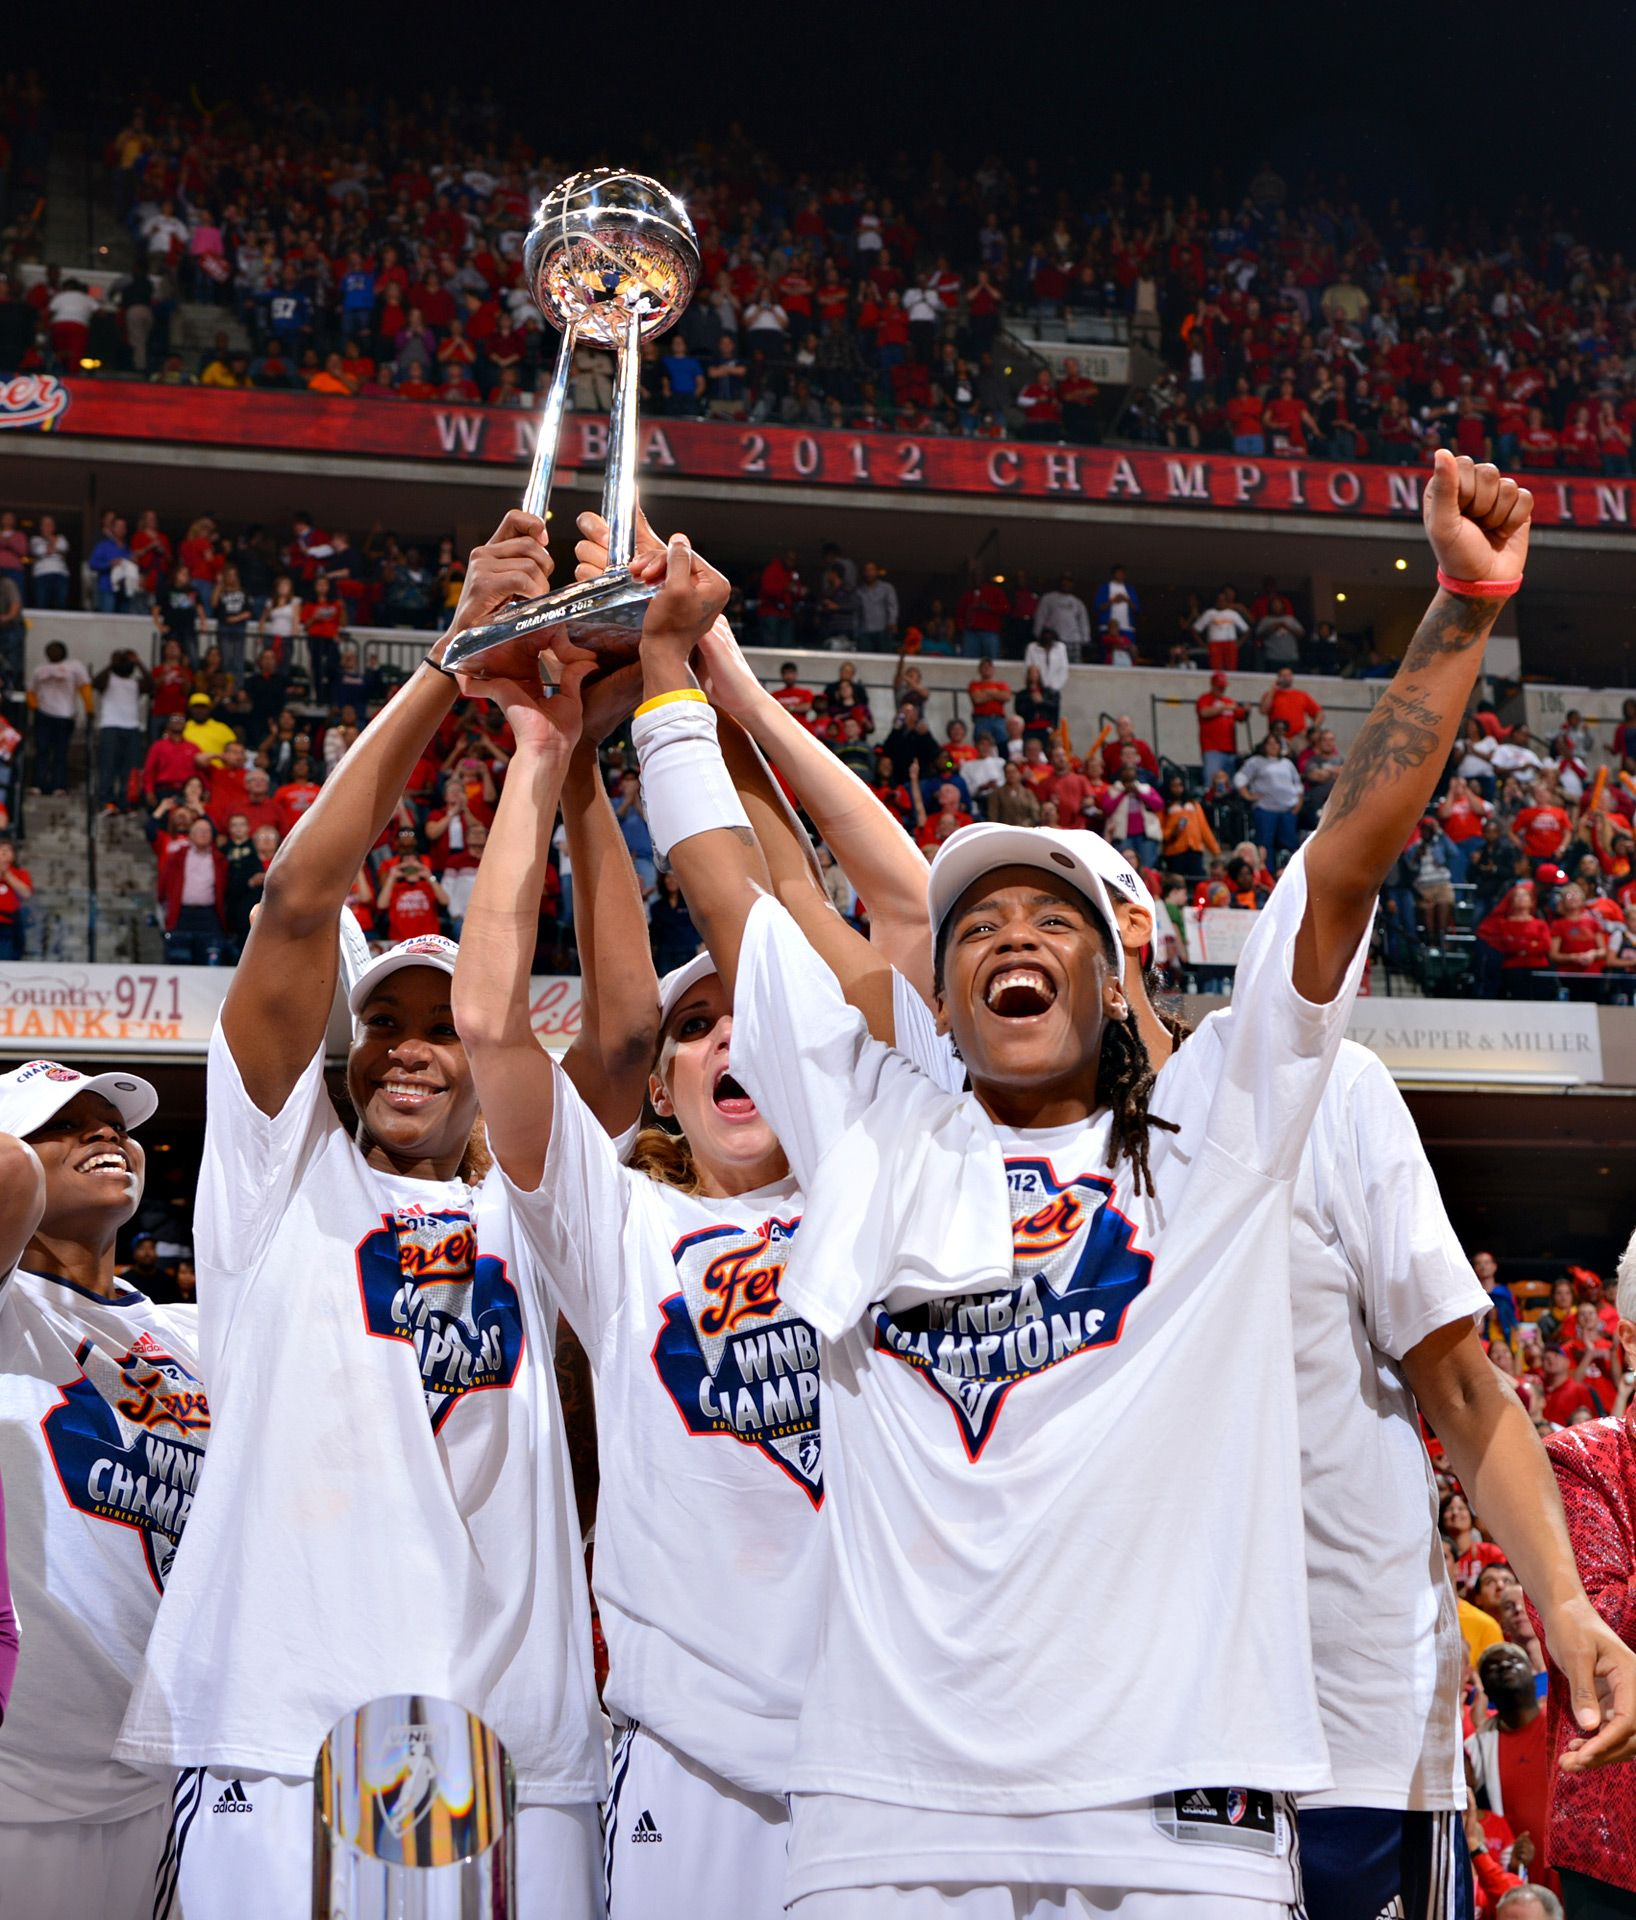 Because a trophy with many hands on it is how that trophy was earned. Together.   The Fever celebrate their 2012 WNBA Championship.